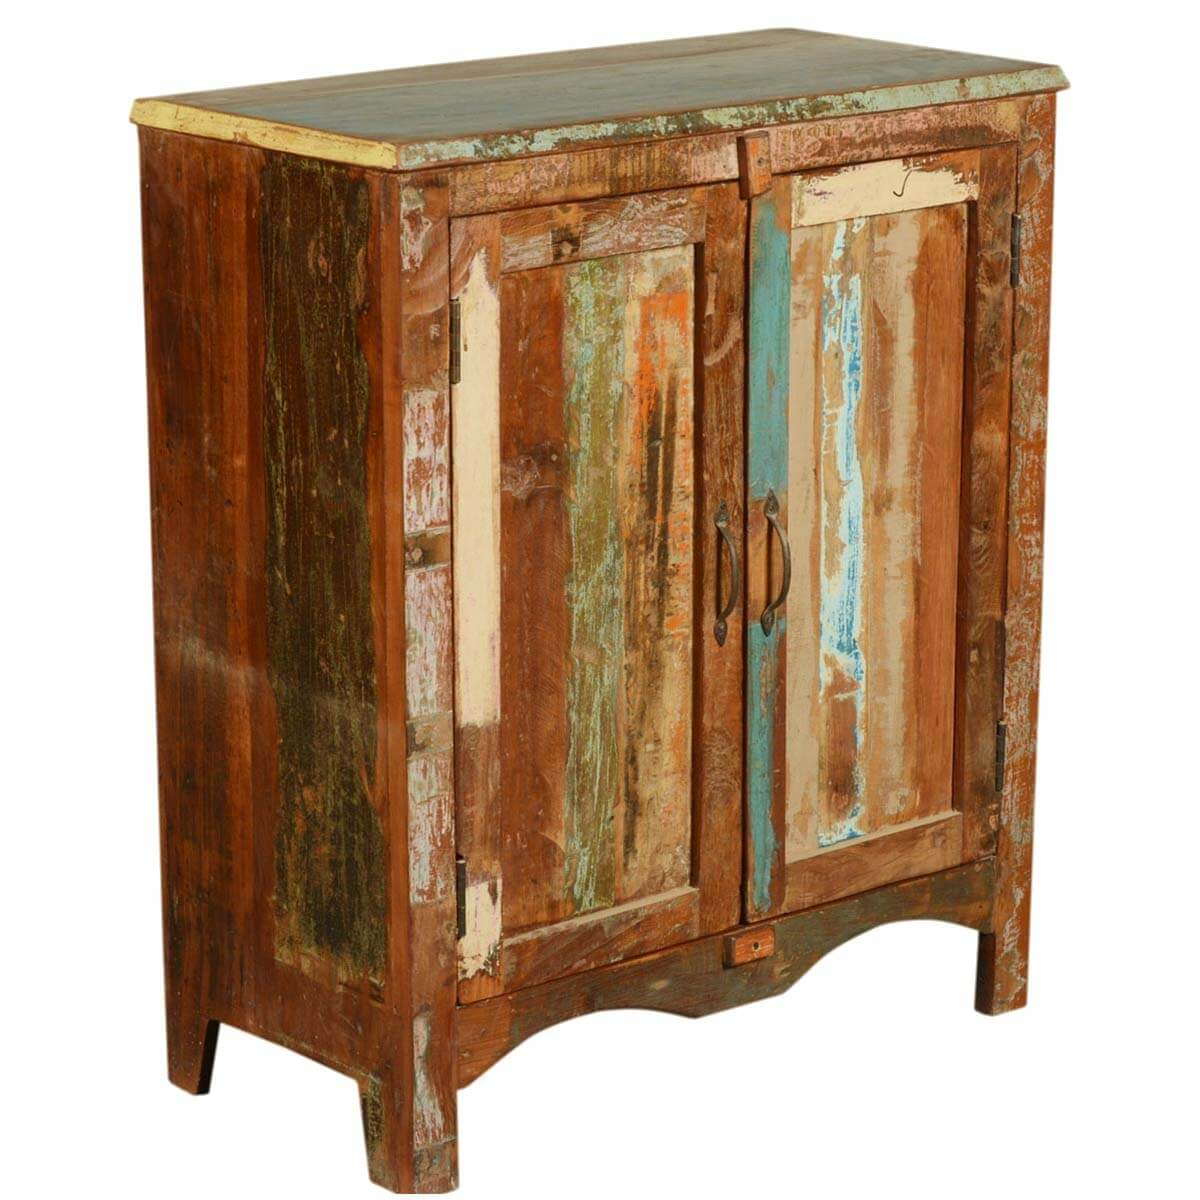 Arcadia Paint Patches Rustic Reclaimed Wood Floor Cabinet